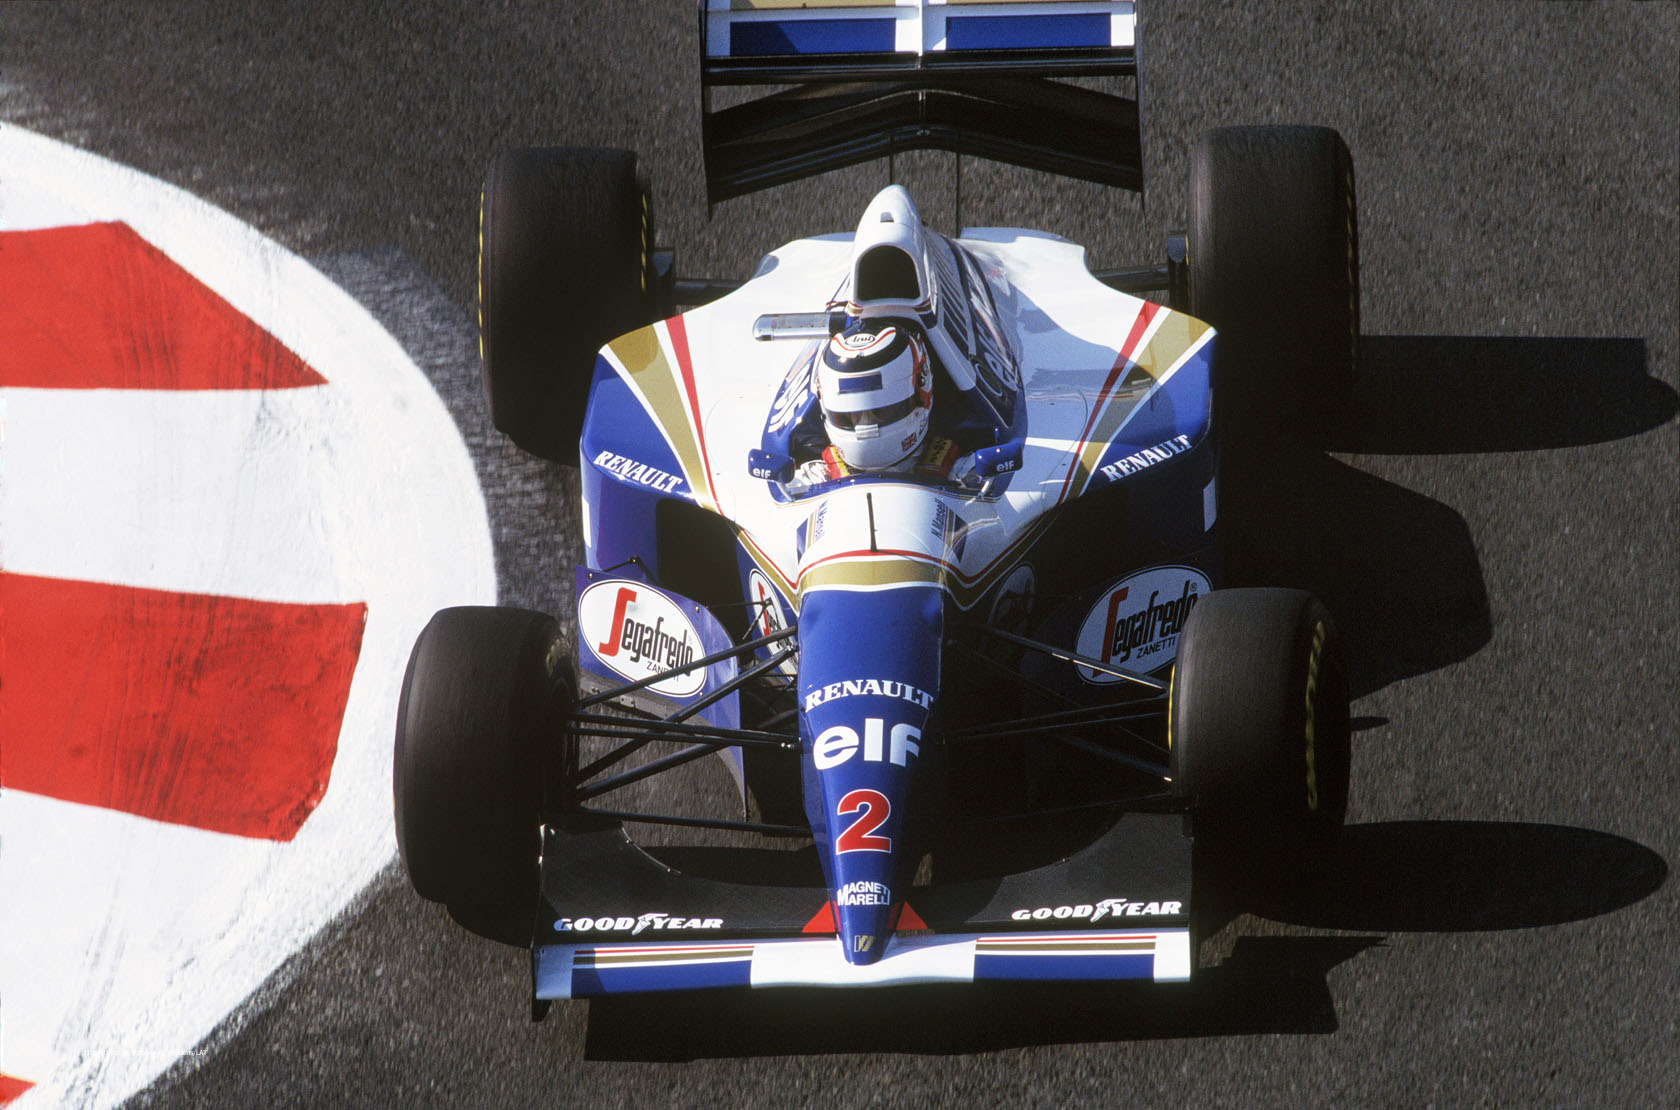 Nigel Mansell, Williams, Magny-Cours, 1994